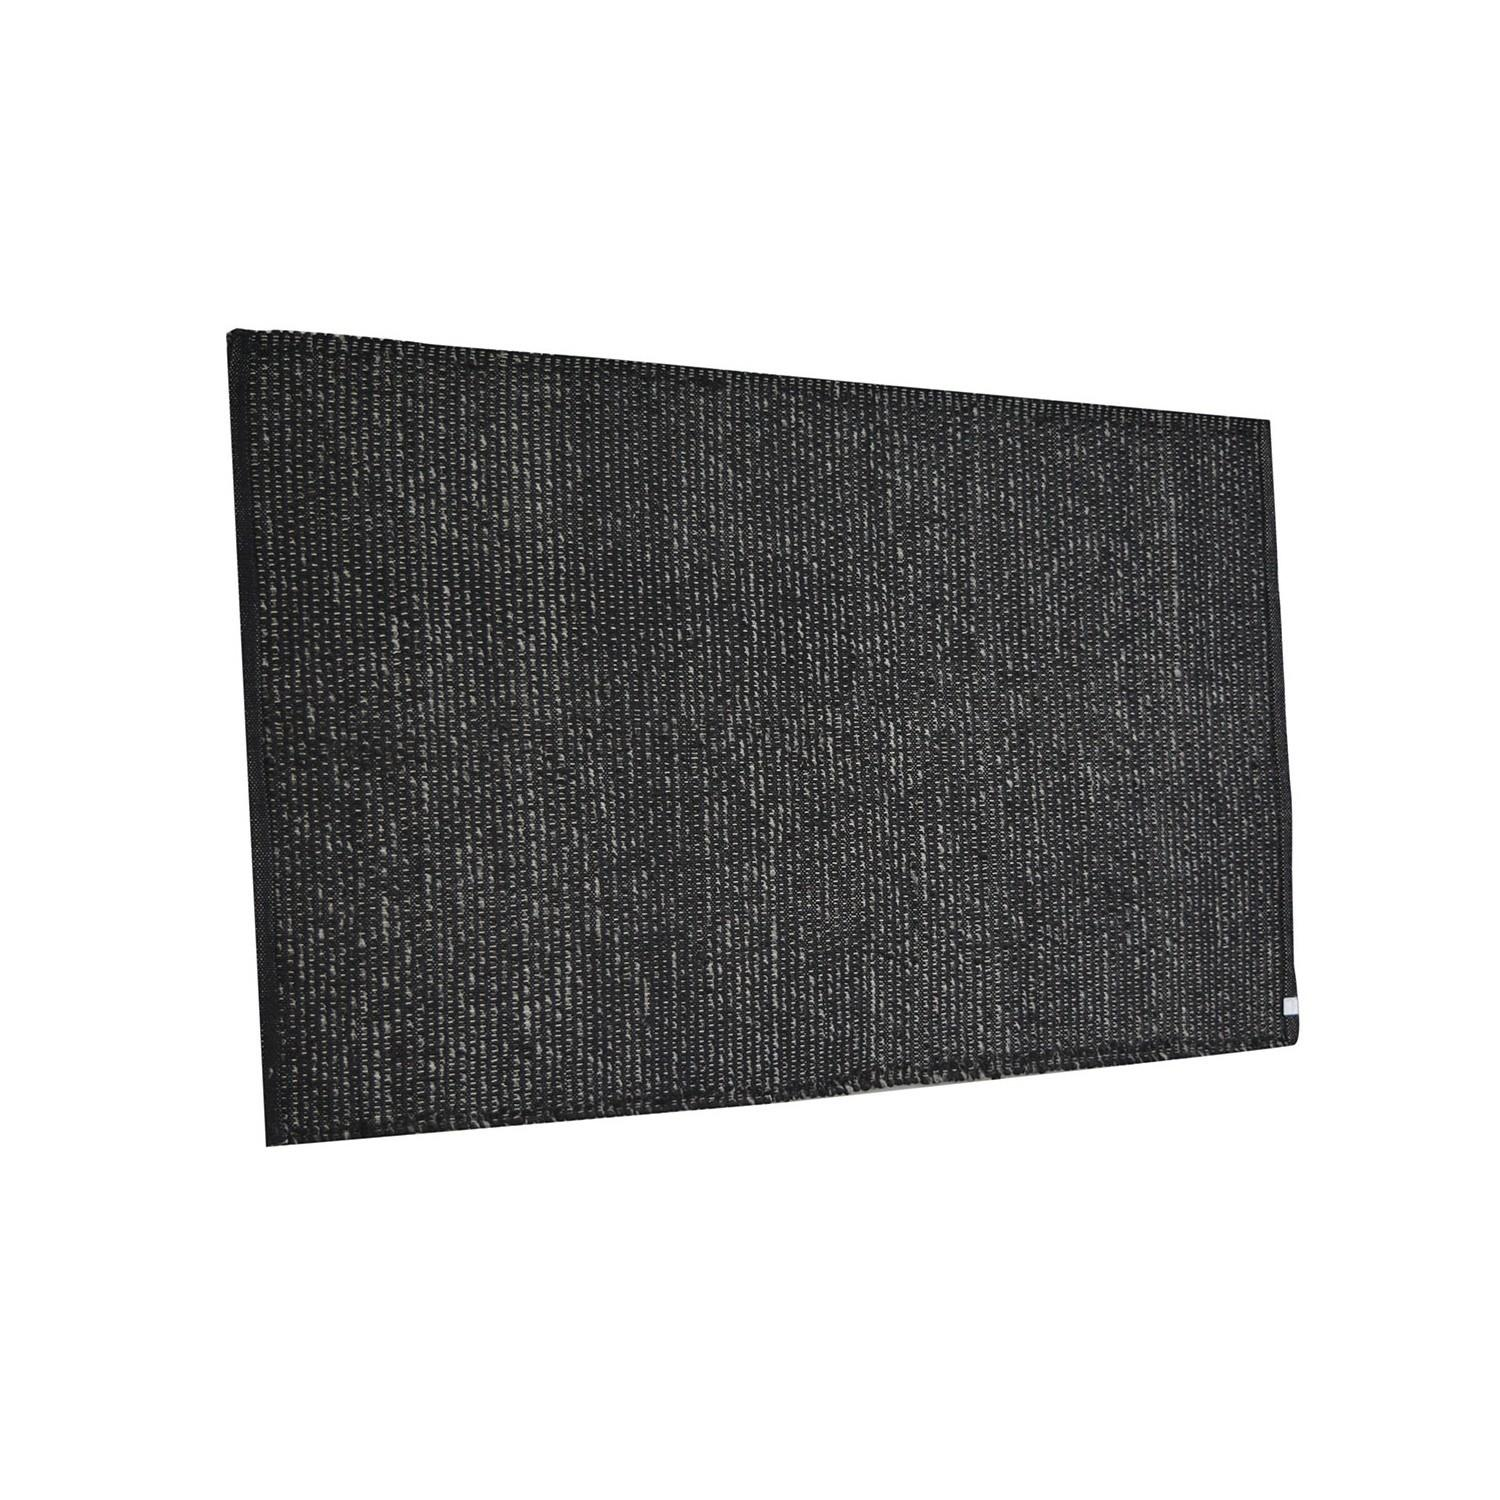 Black Knit Rug Wool Cotton Tp1039s